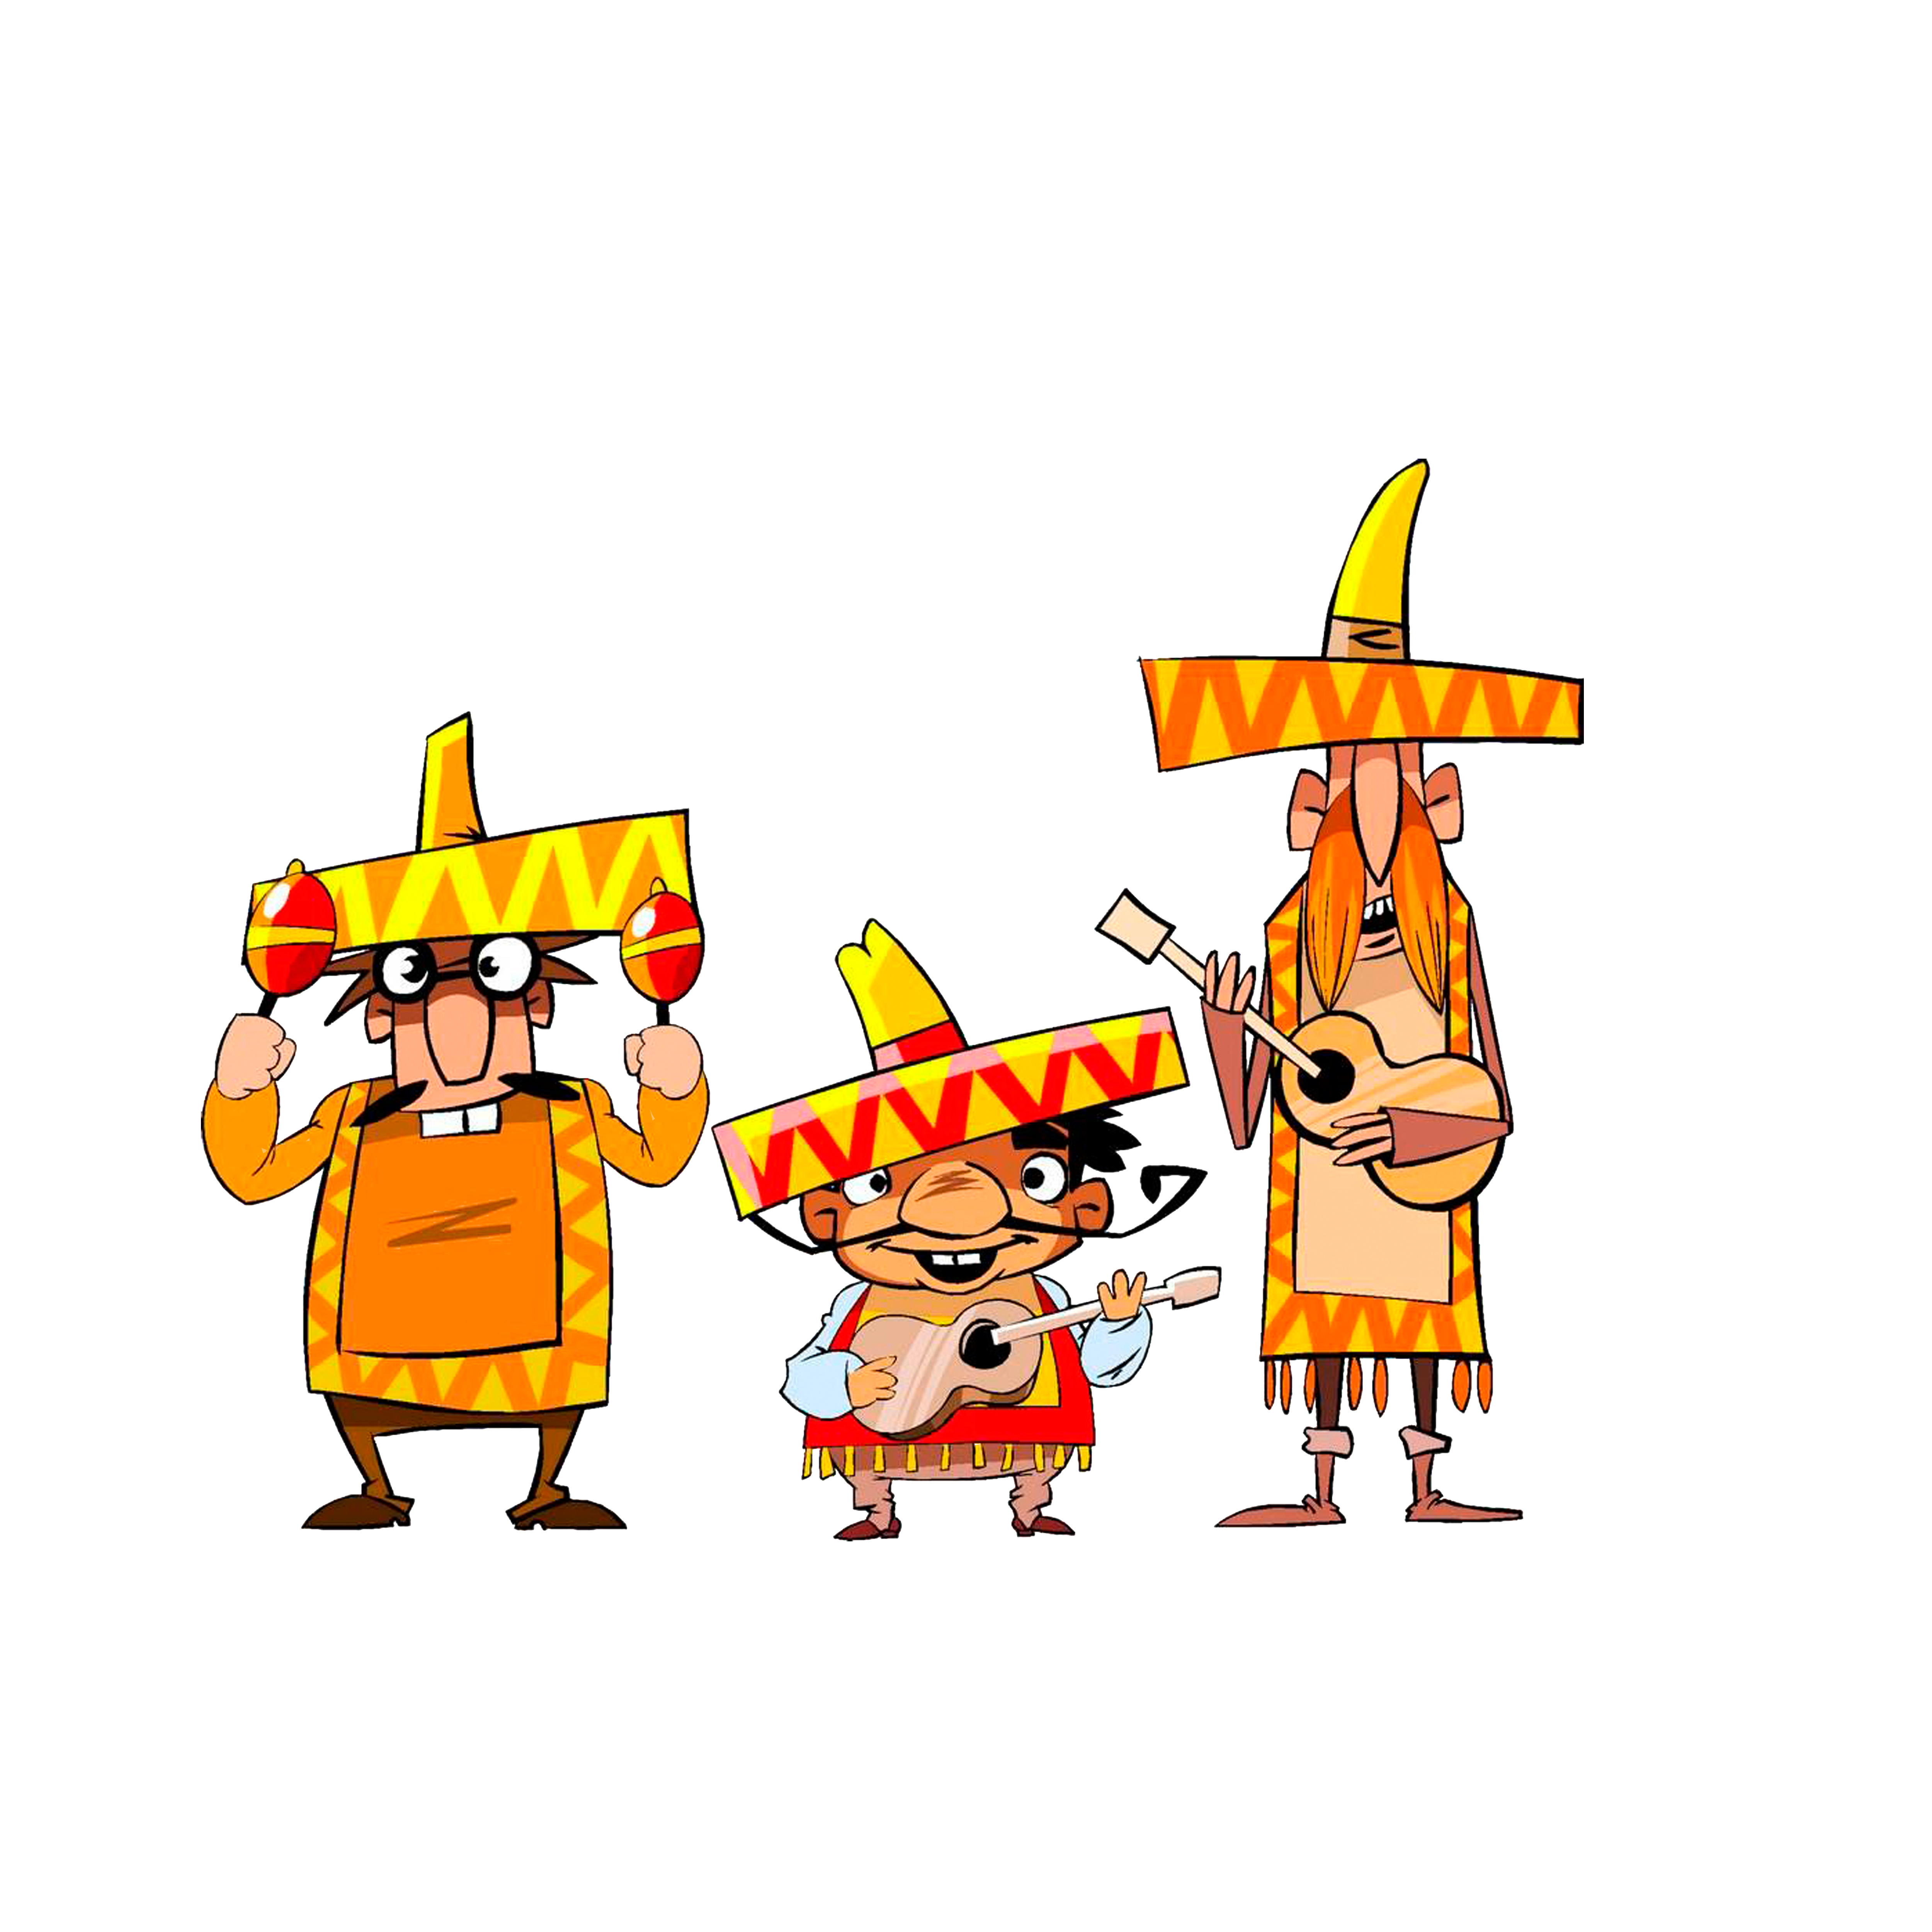 Mexico cuisine mexicans royalty. Musician clipart music mexican